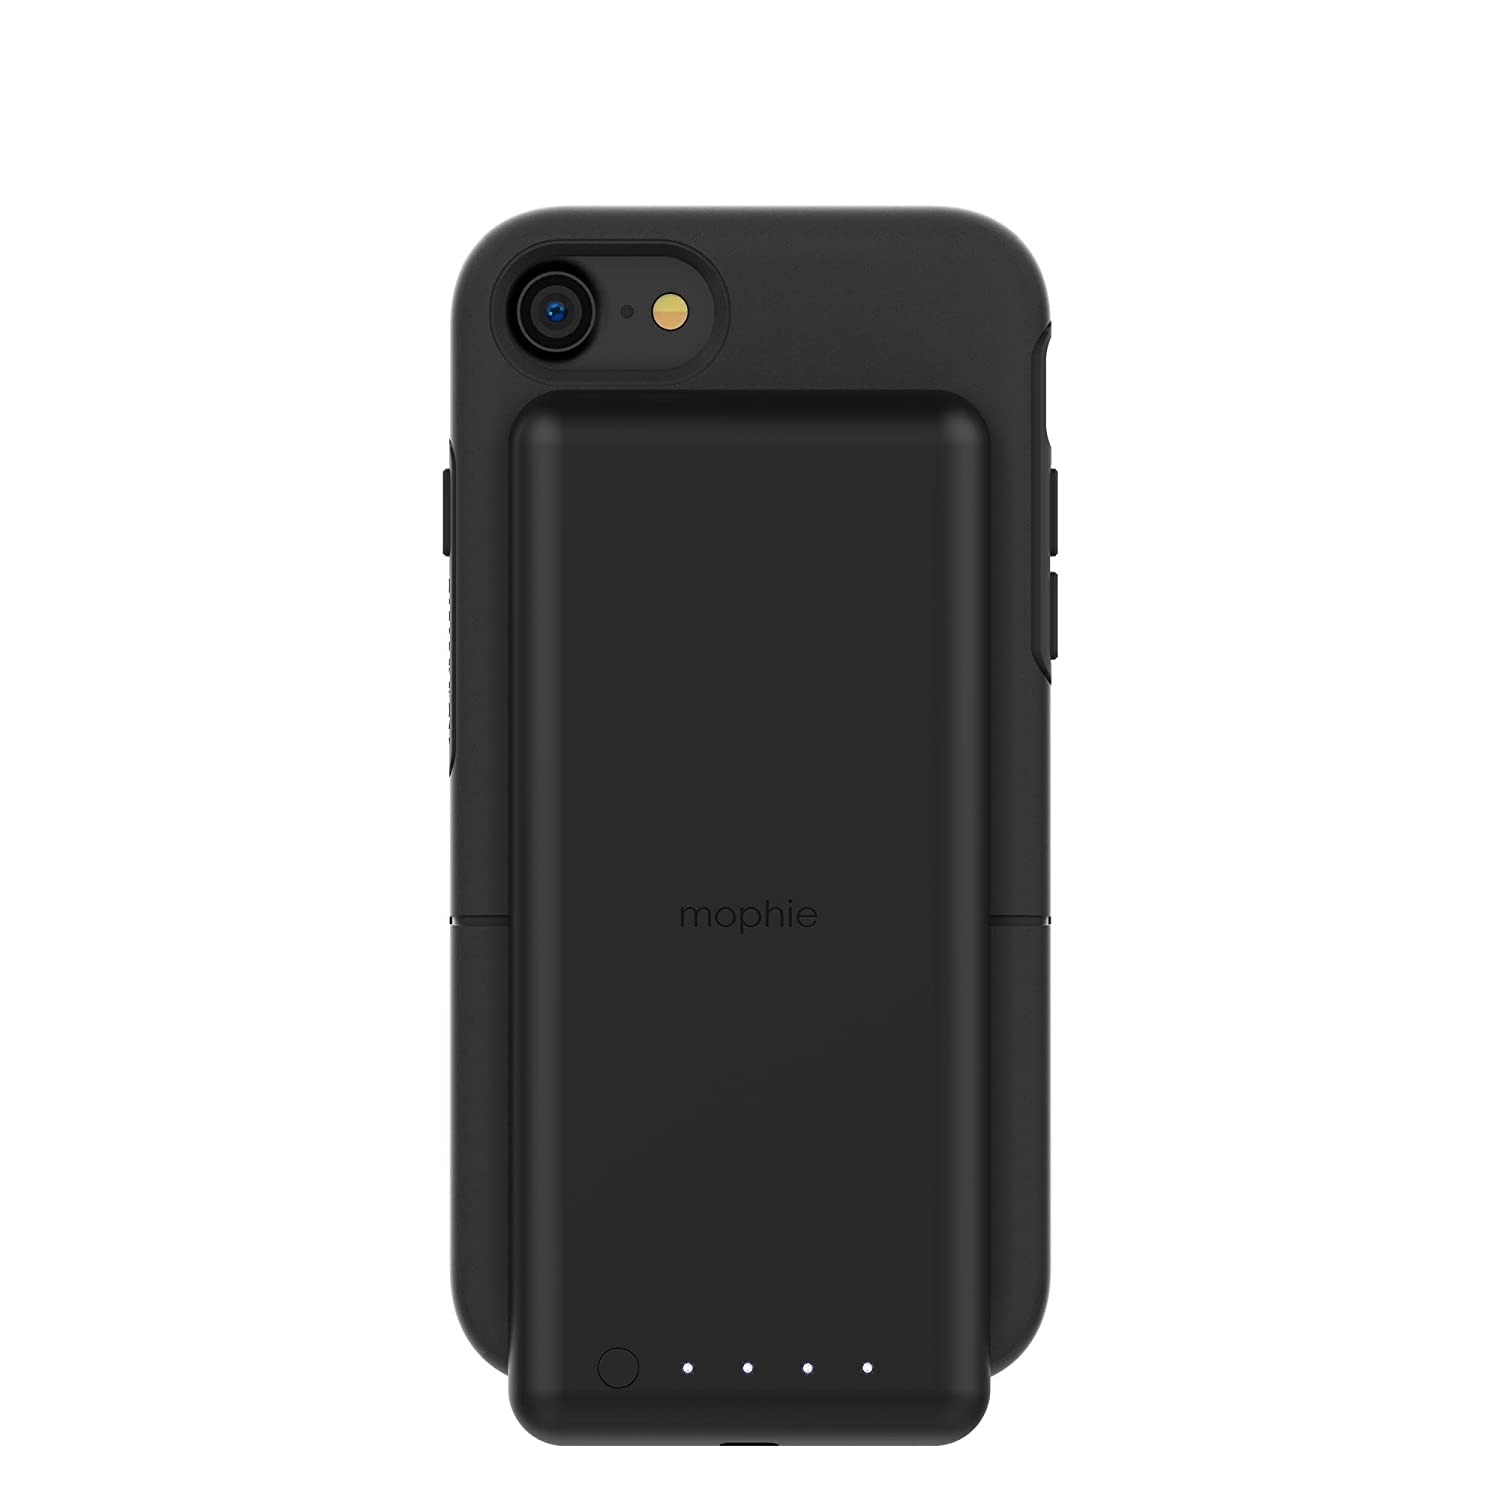 timeless design b18a0 fe6d4 charge force powerstation Module for Otterbox uniVERSE Case Made for Apple  iPhone 6, 6 Plus, 6s, 6s Plus, 7, 7 Plus – Rechargeable Attachable ...